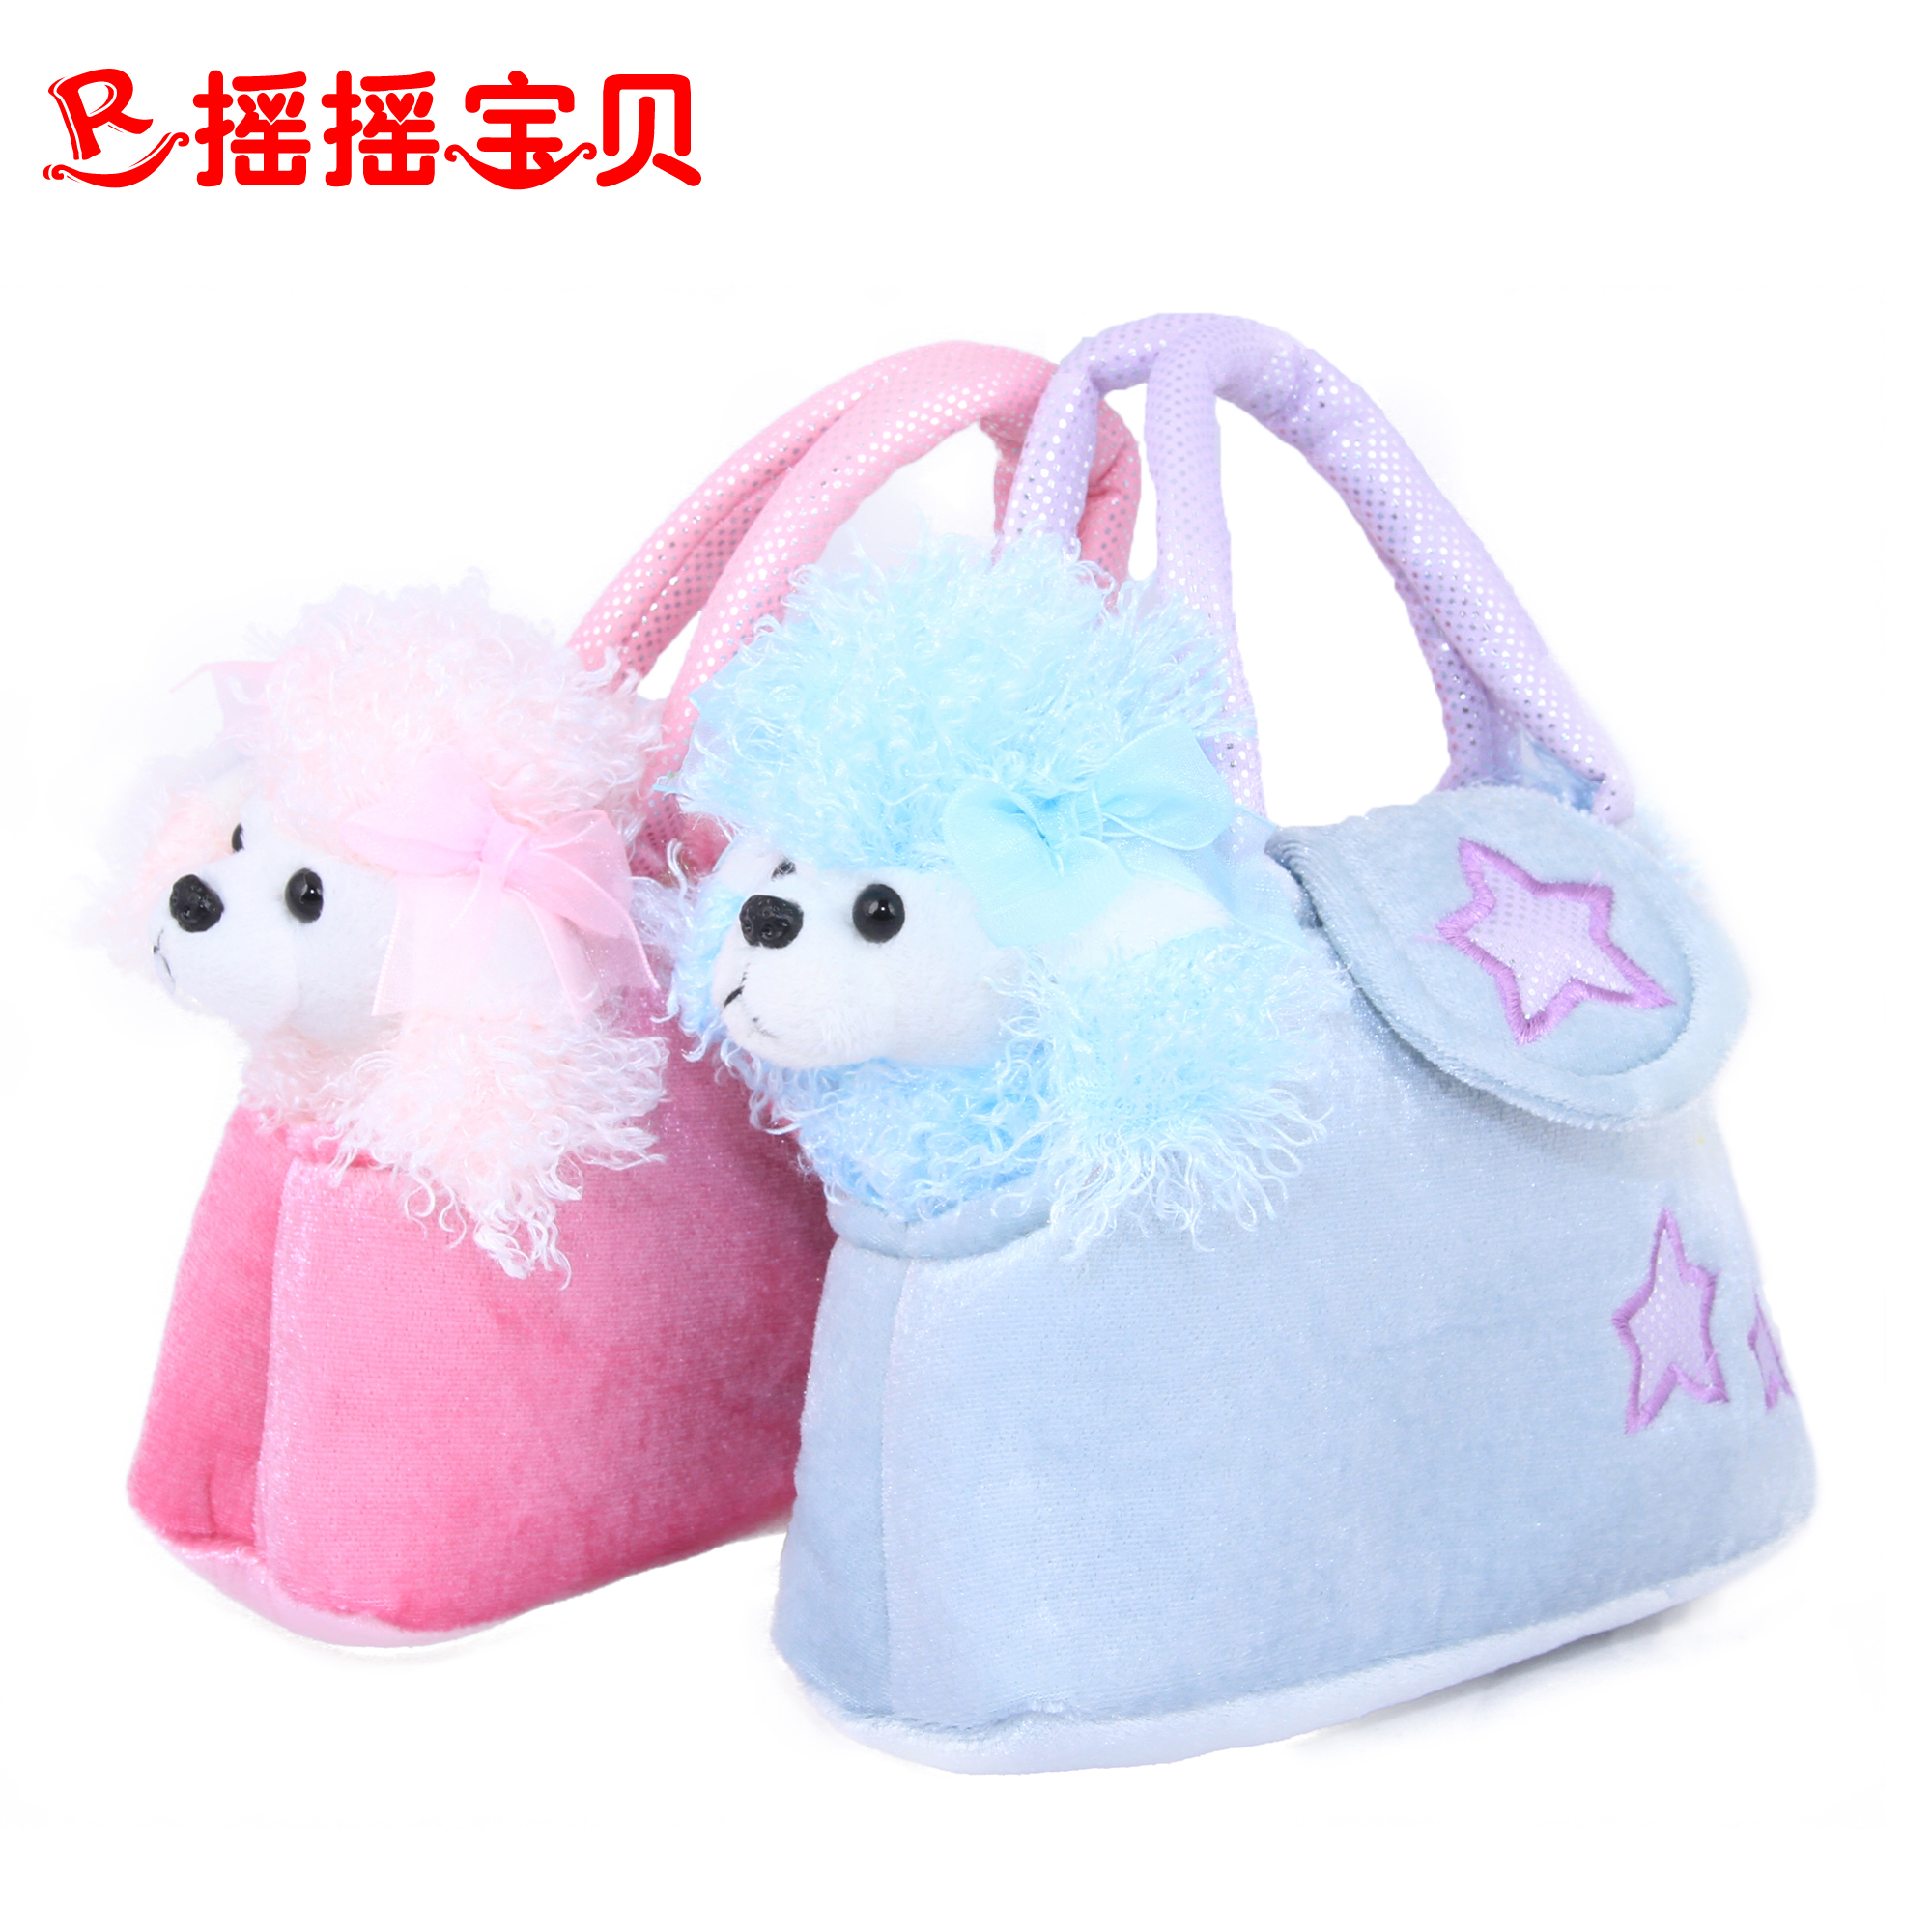 Gift Bag Toys : Child gift baby doll bag poodle handbag toy storage